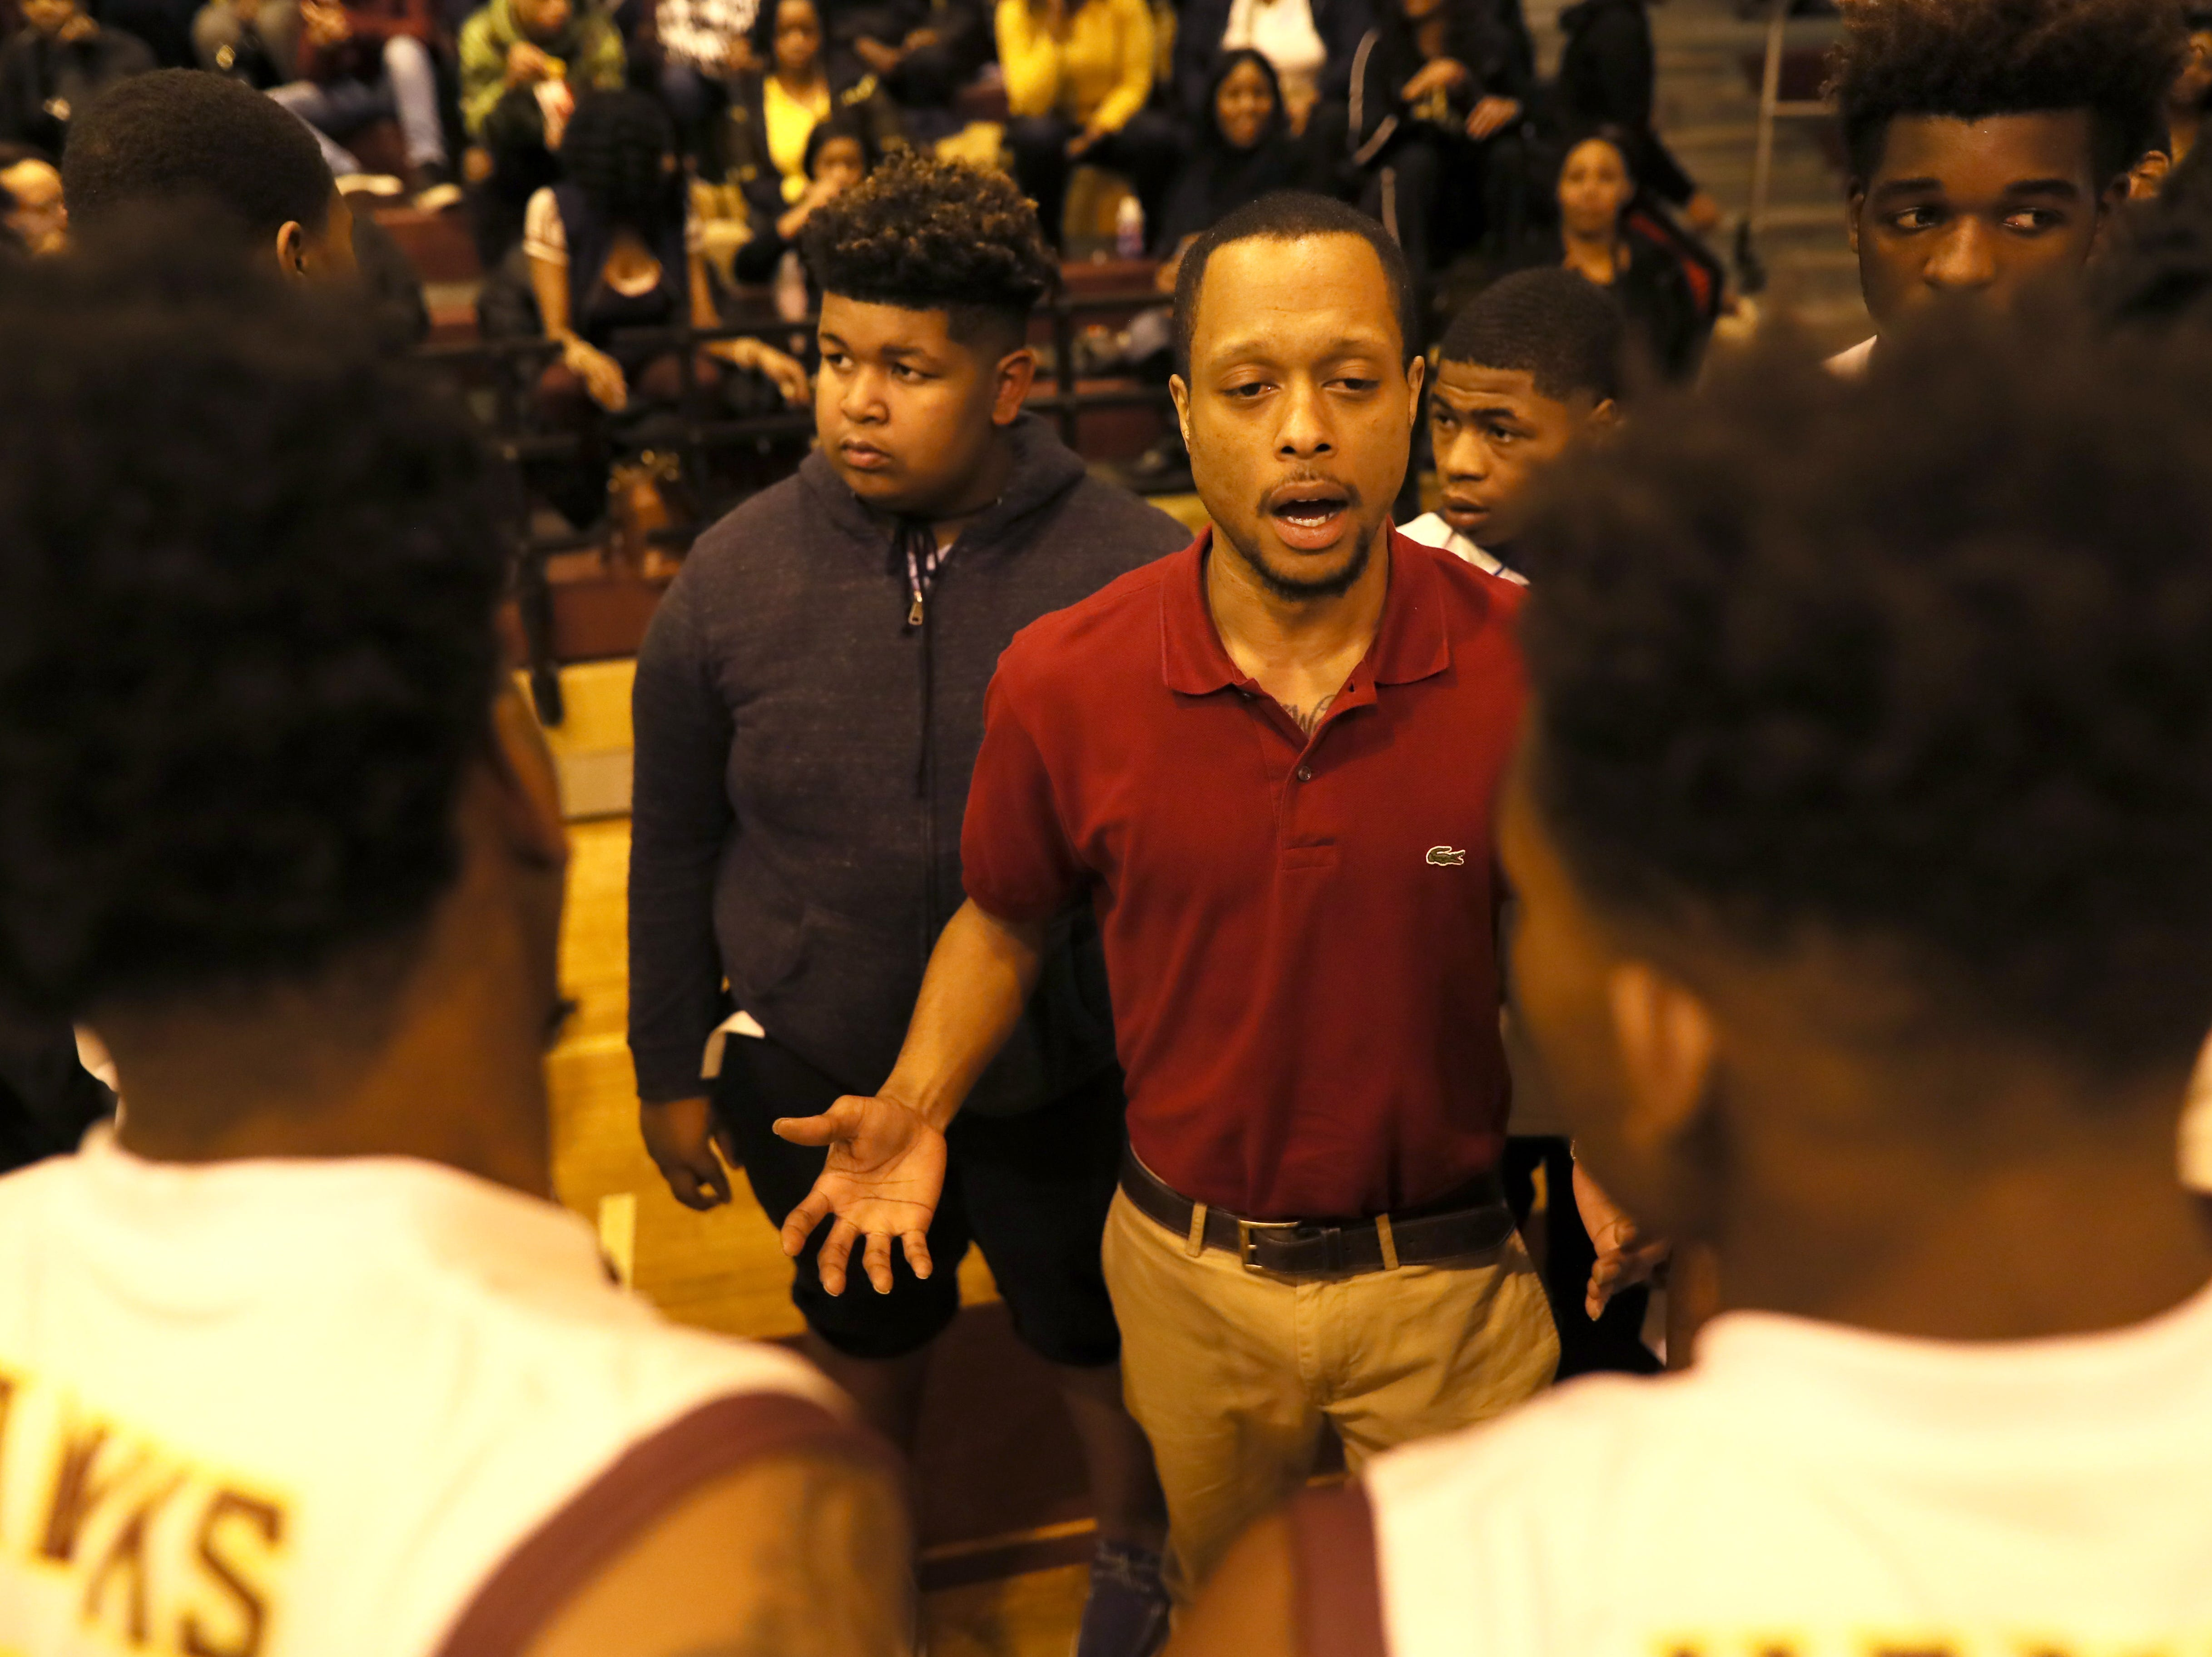 Oakhaven Head Coach Lewis Myers talks to his team during a timeout in their game against Whitehaven at Oakhaven High School on Thursday, Jan. 10, 2019.